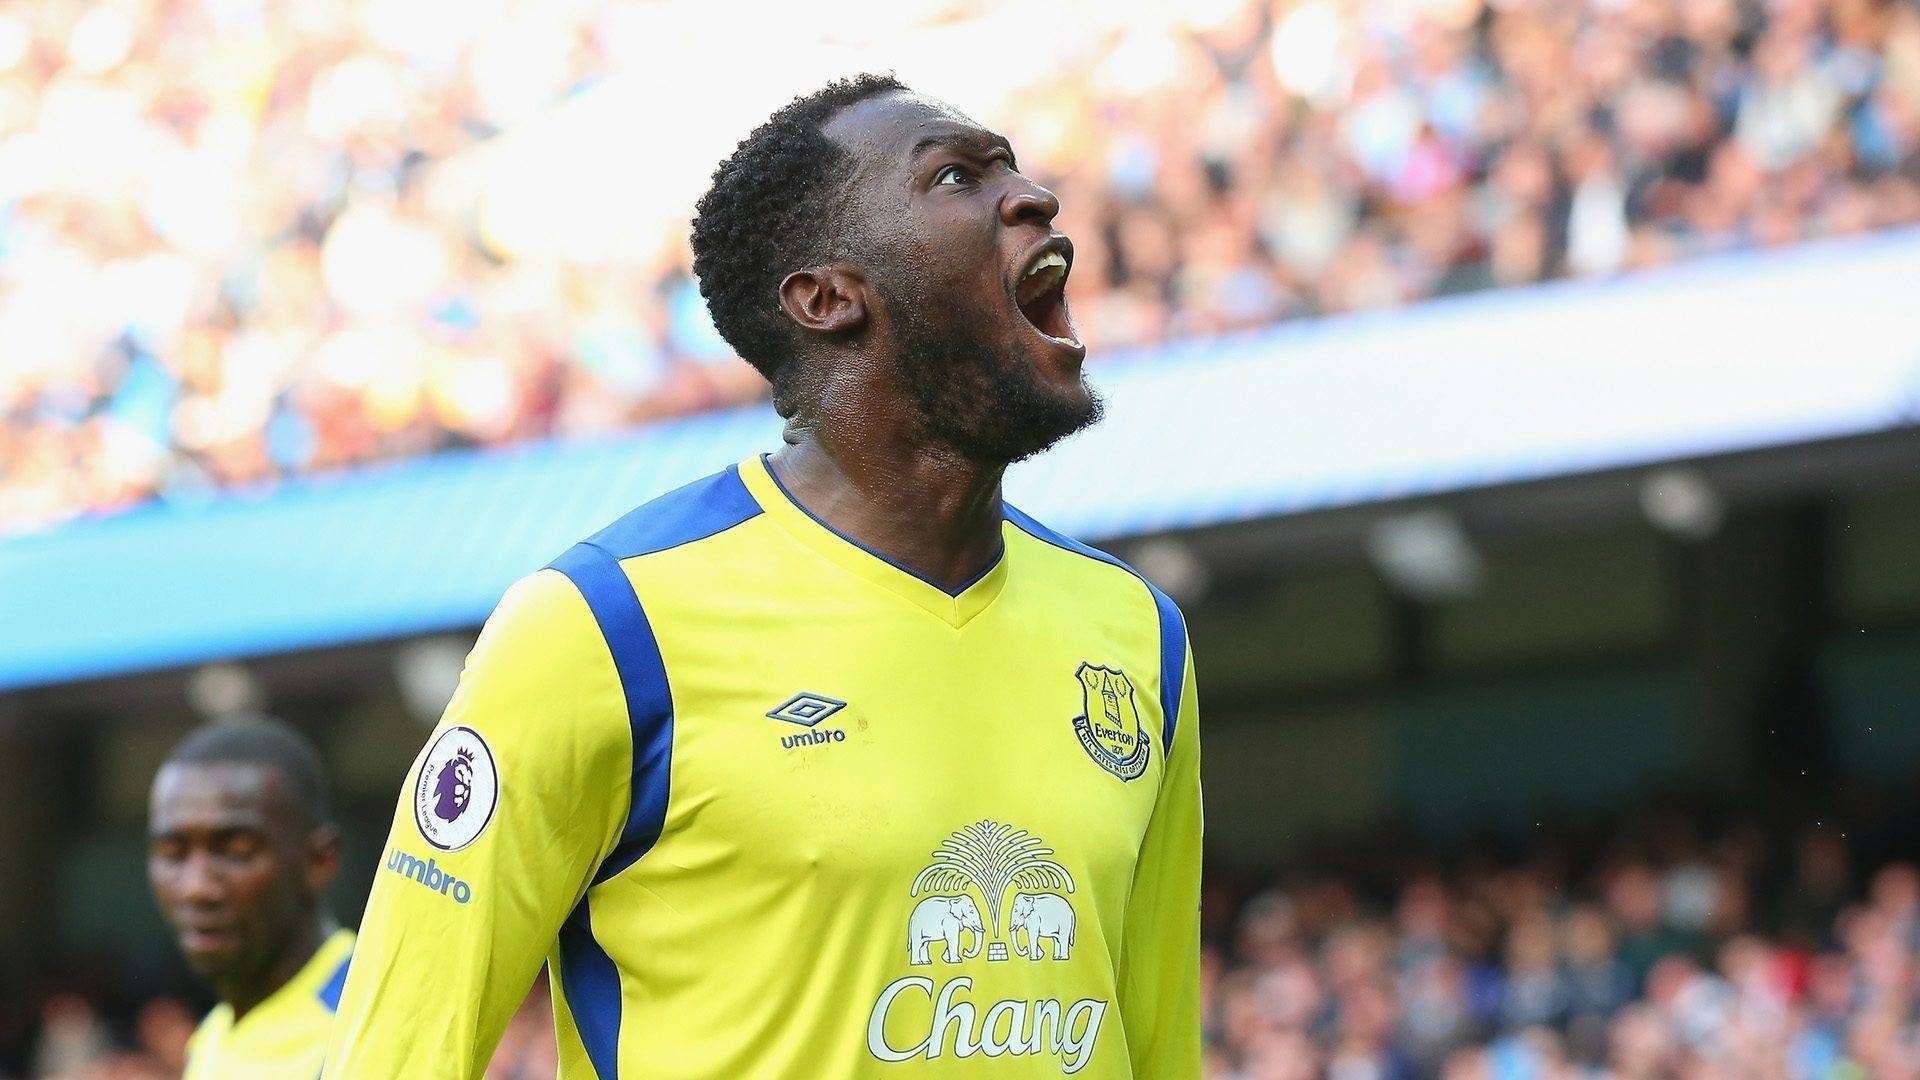 MANCHESTER, ENGLAND - OCTOBER 15: Romelu Lukaku of Everton celebrates scoring his sides first goal during the Premier League match between Manchester City and Everton at Etihad Stadium on October 15, 2016 in Manchester, England. (Photo by Alex Livesey/Getty Images)